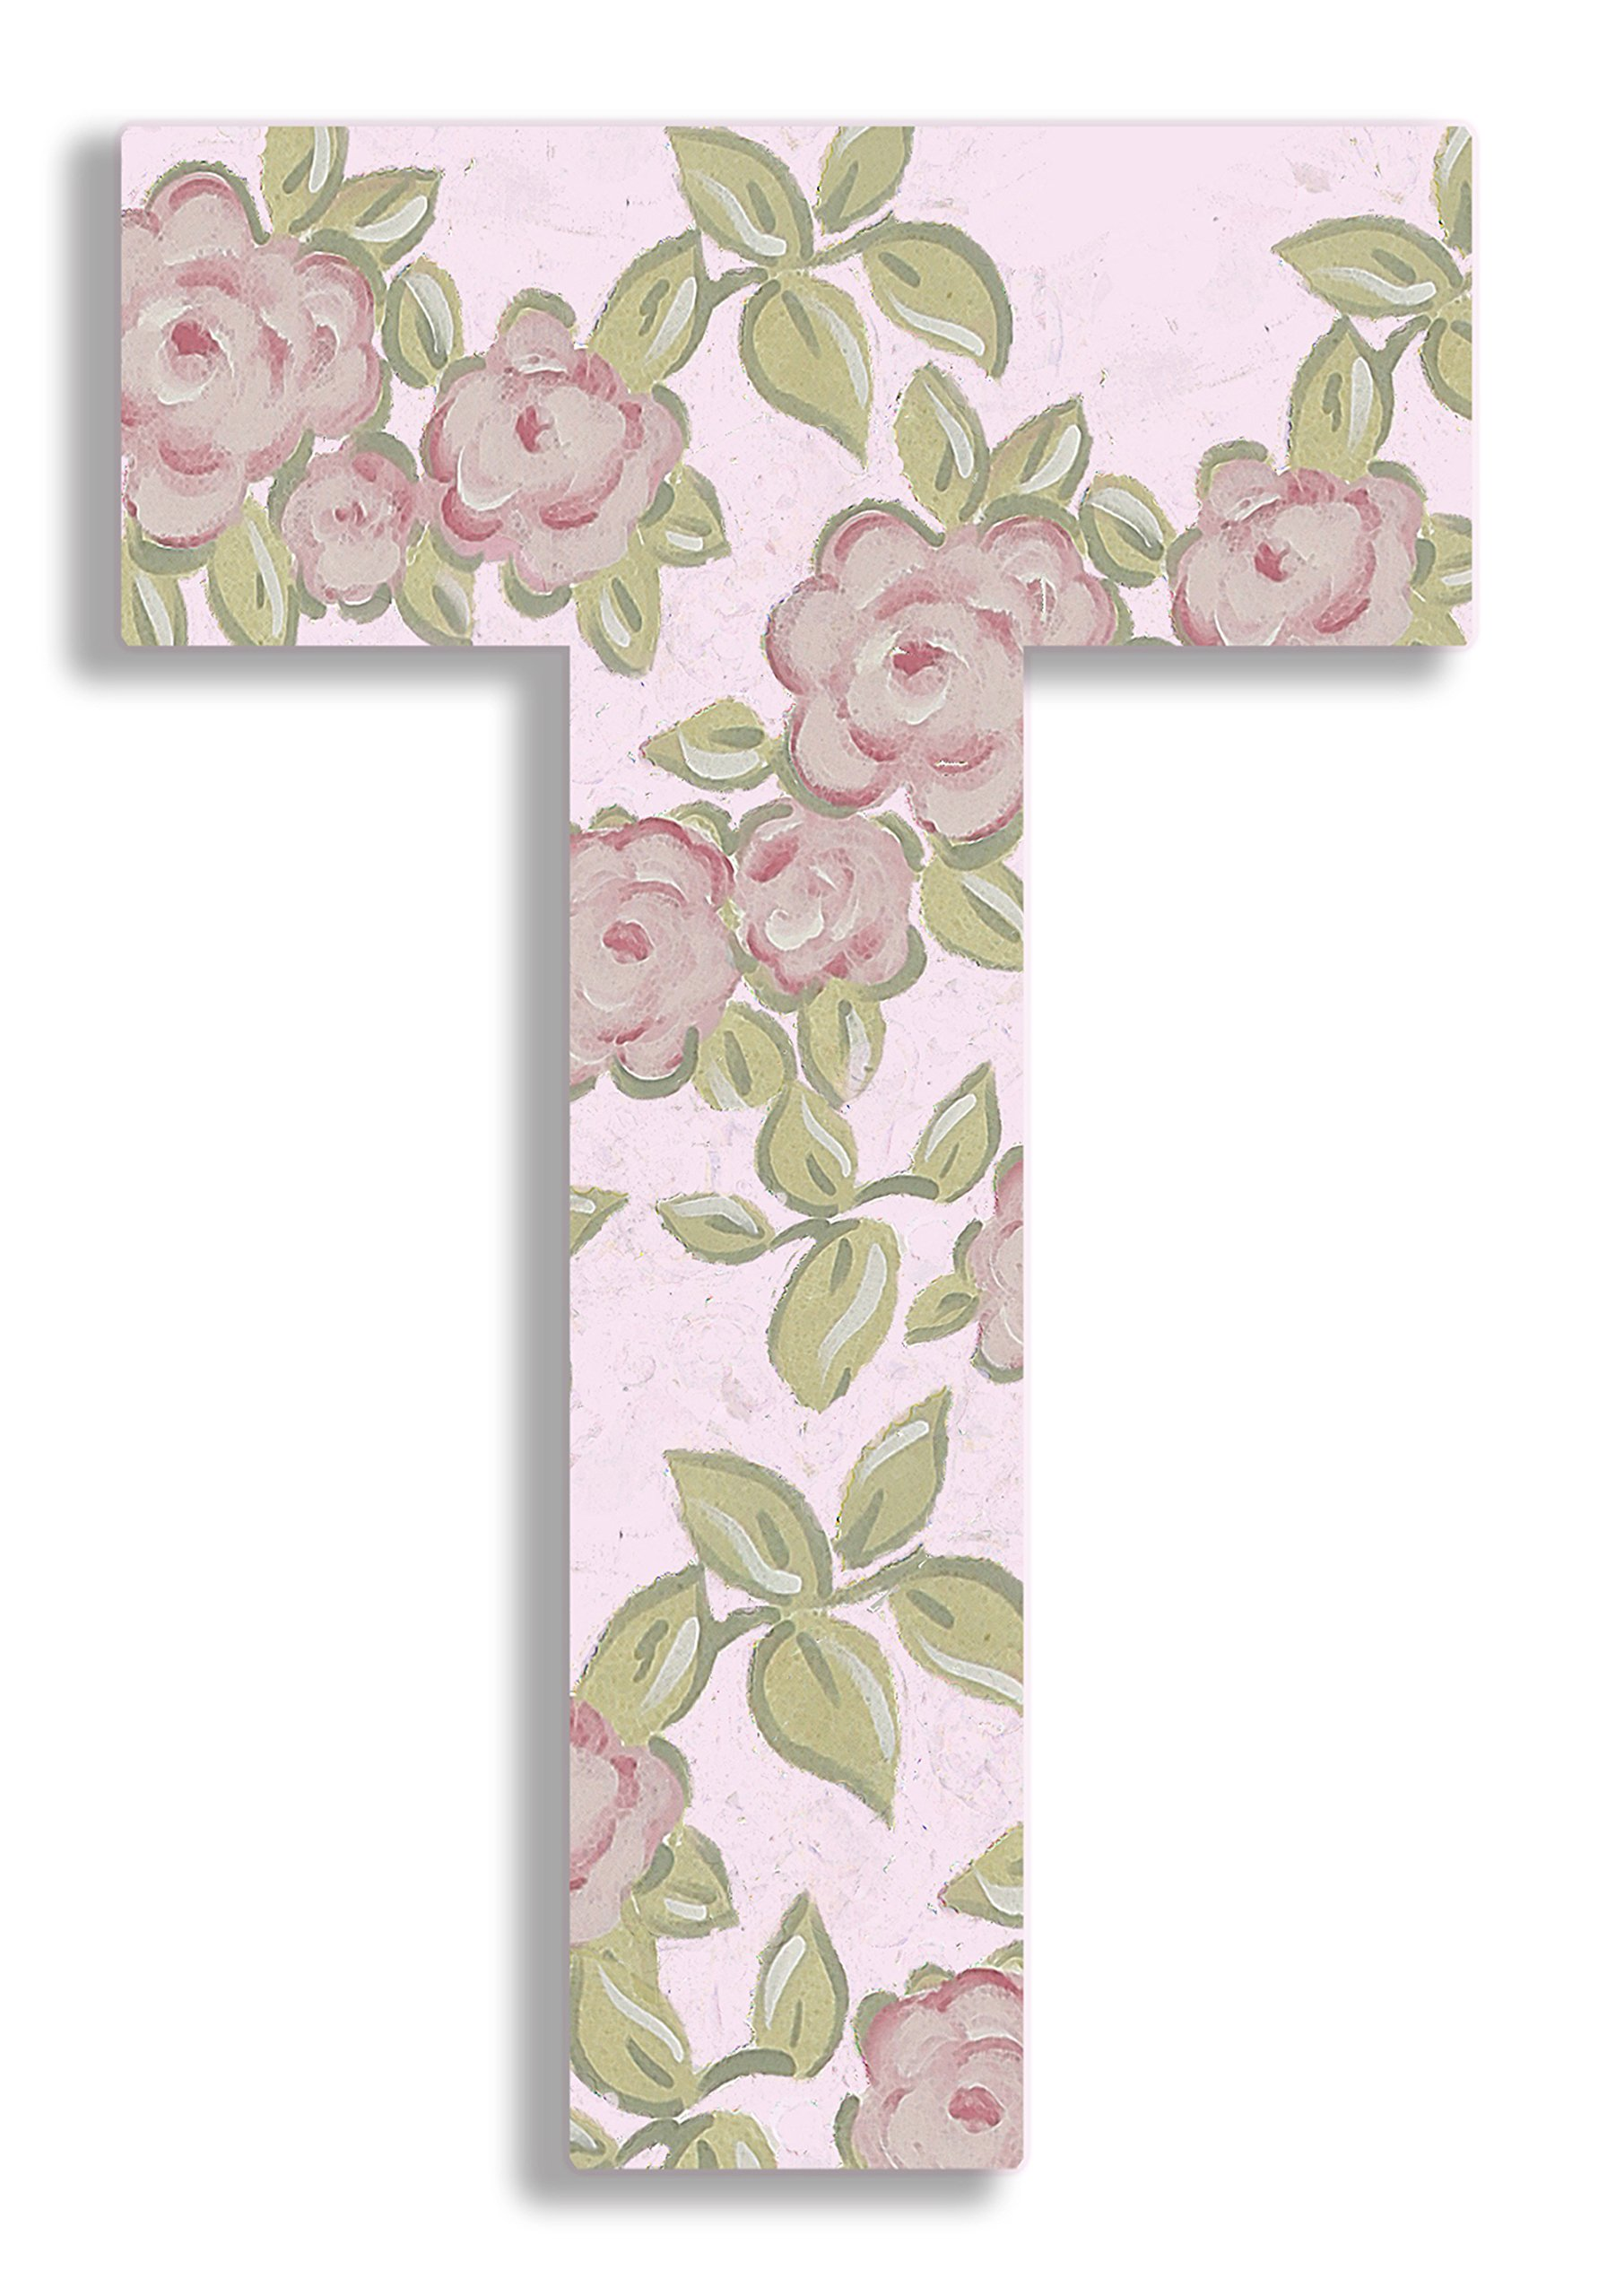 Stupell Home Décor Pink Roses on Pink 18 Inch Hanging Wooden Initial, 12 x 0.5 x 18, Proudly Made in USA by The Kids Room by Stupell